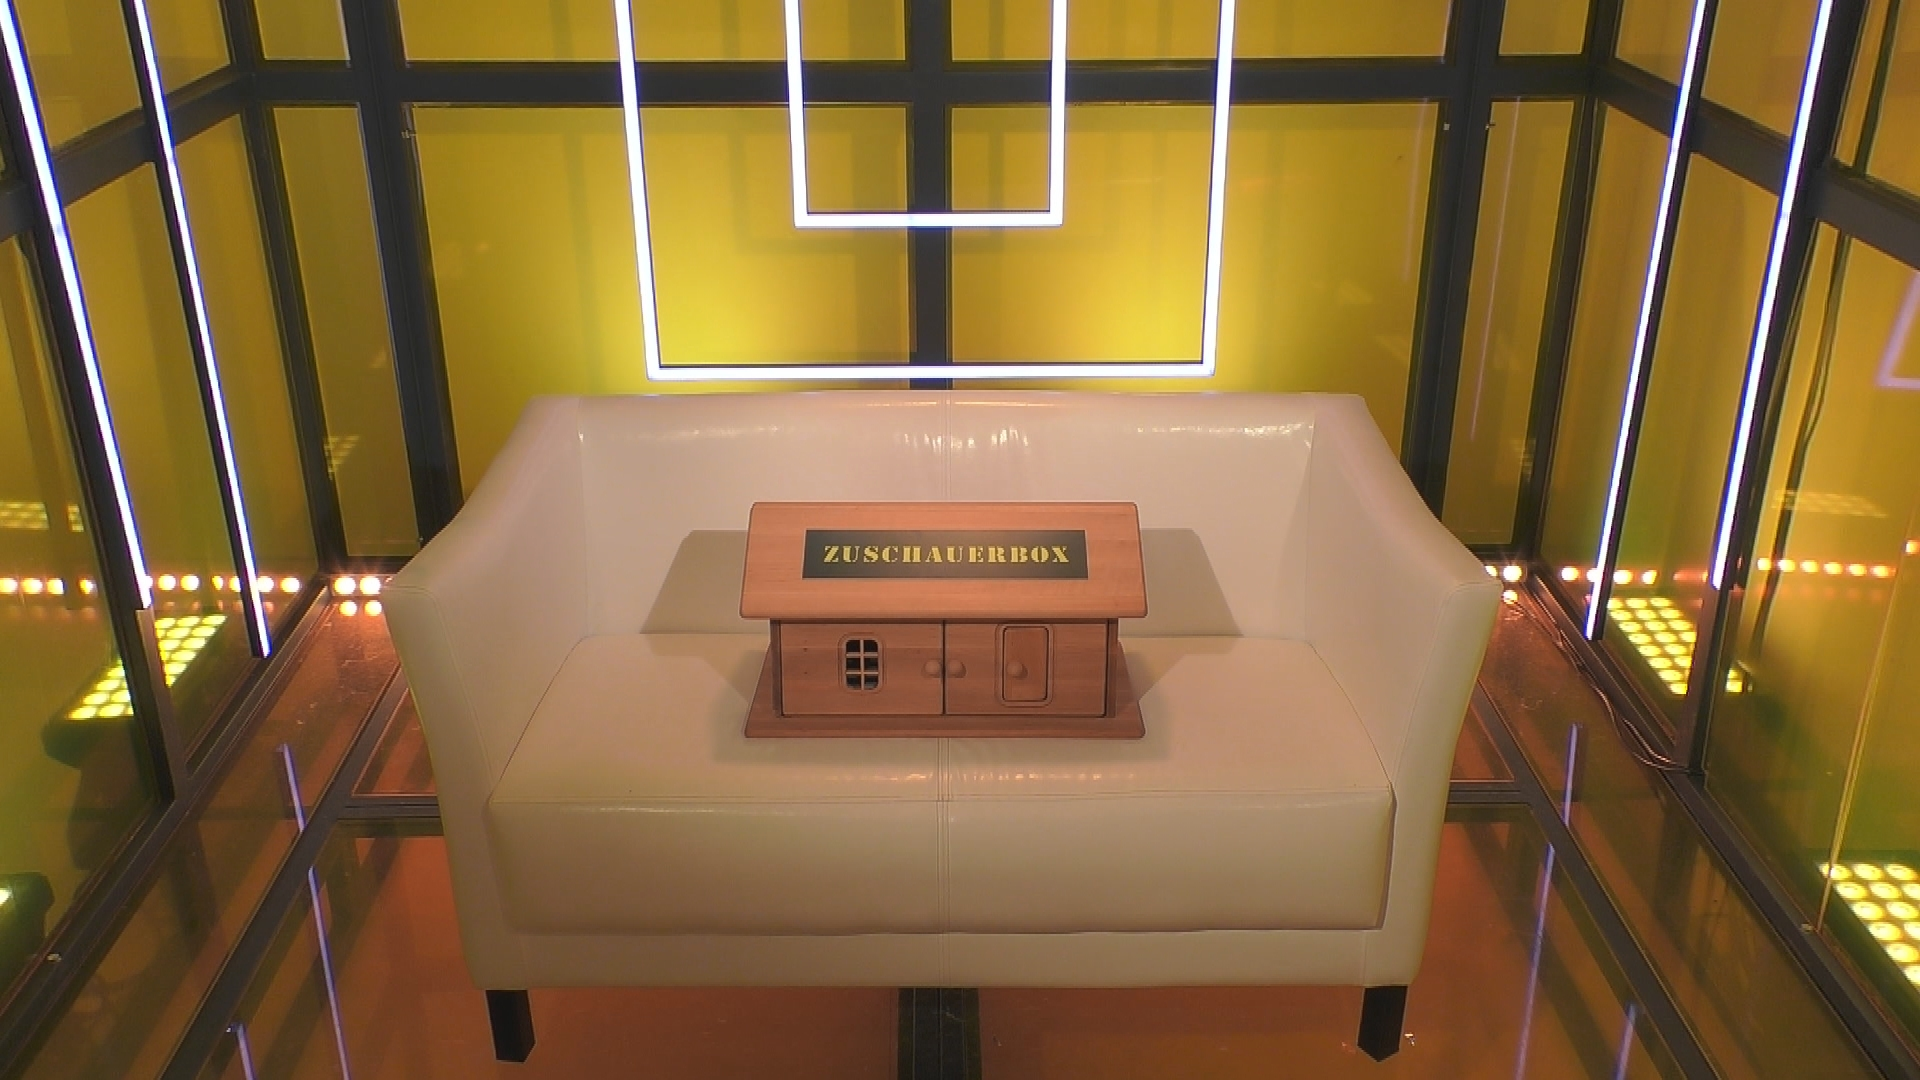 Big Brother 2020 Zuschauerbox Voting